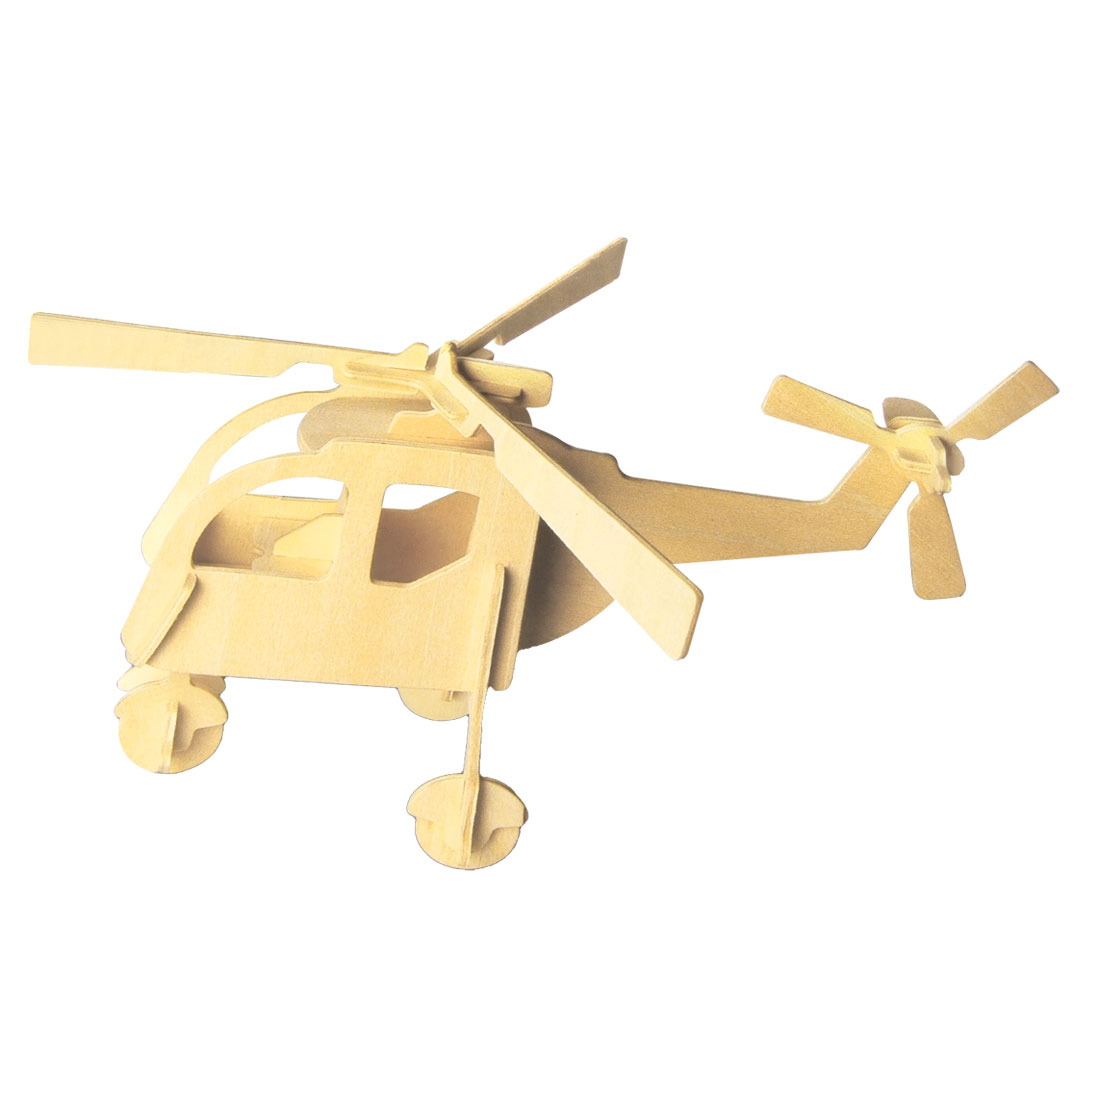 Child-DIY-Wooden-3D-Helicopter-Model-Construction-Kit-Puzzle-Toy